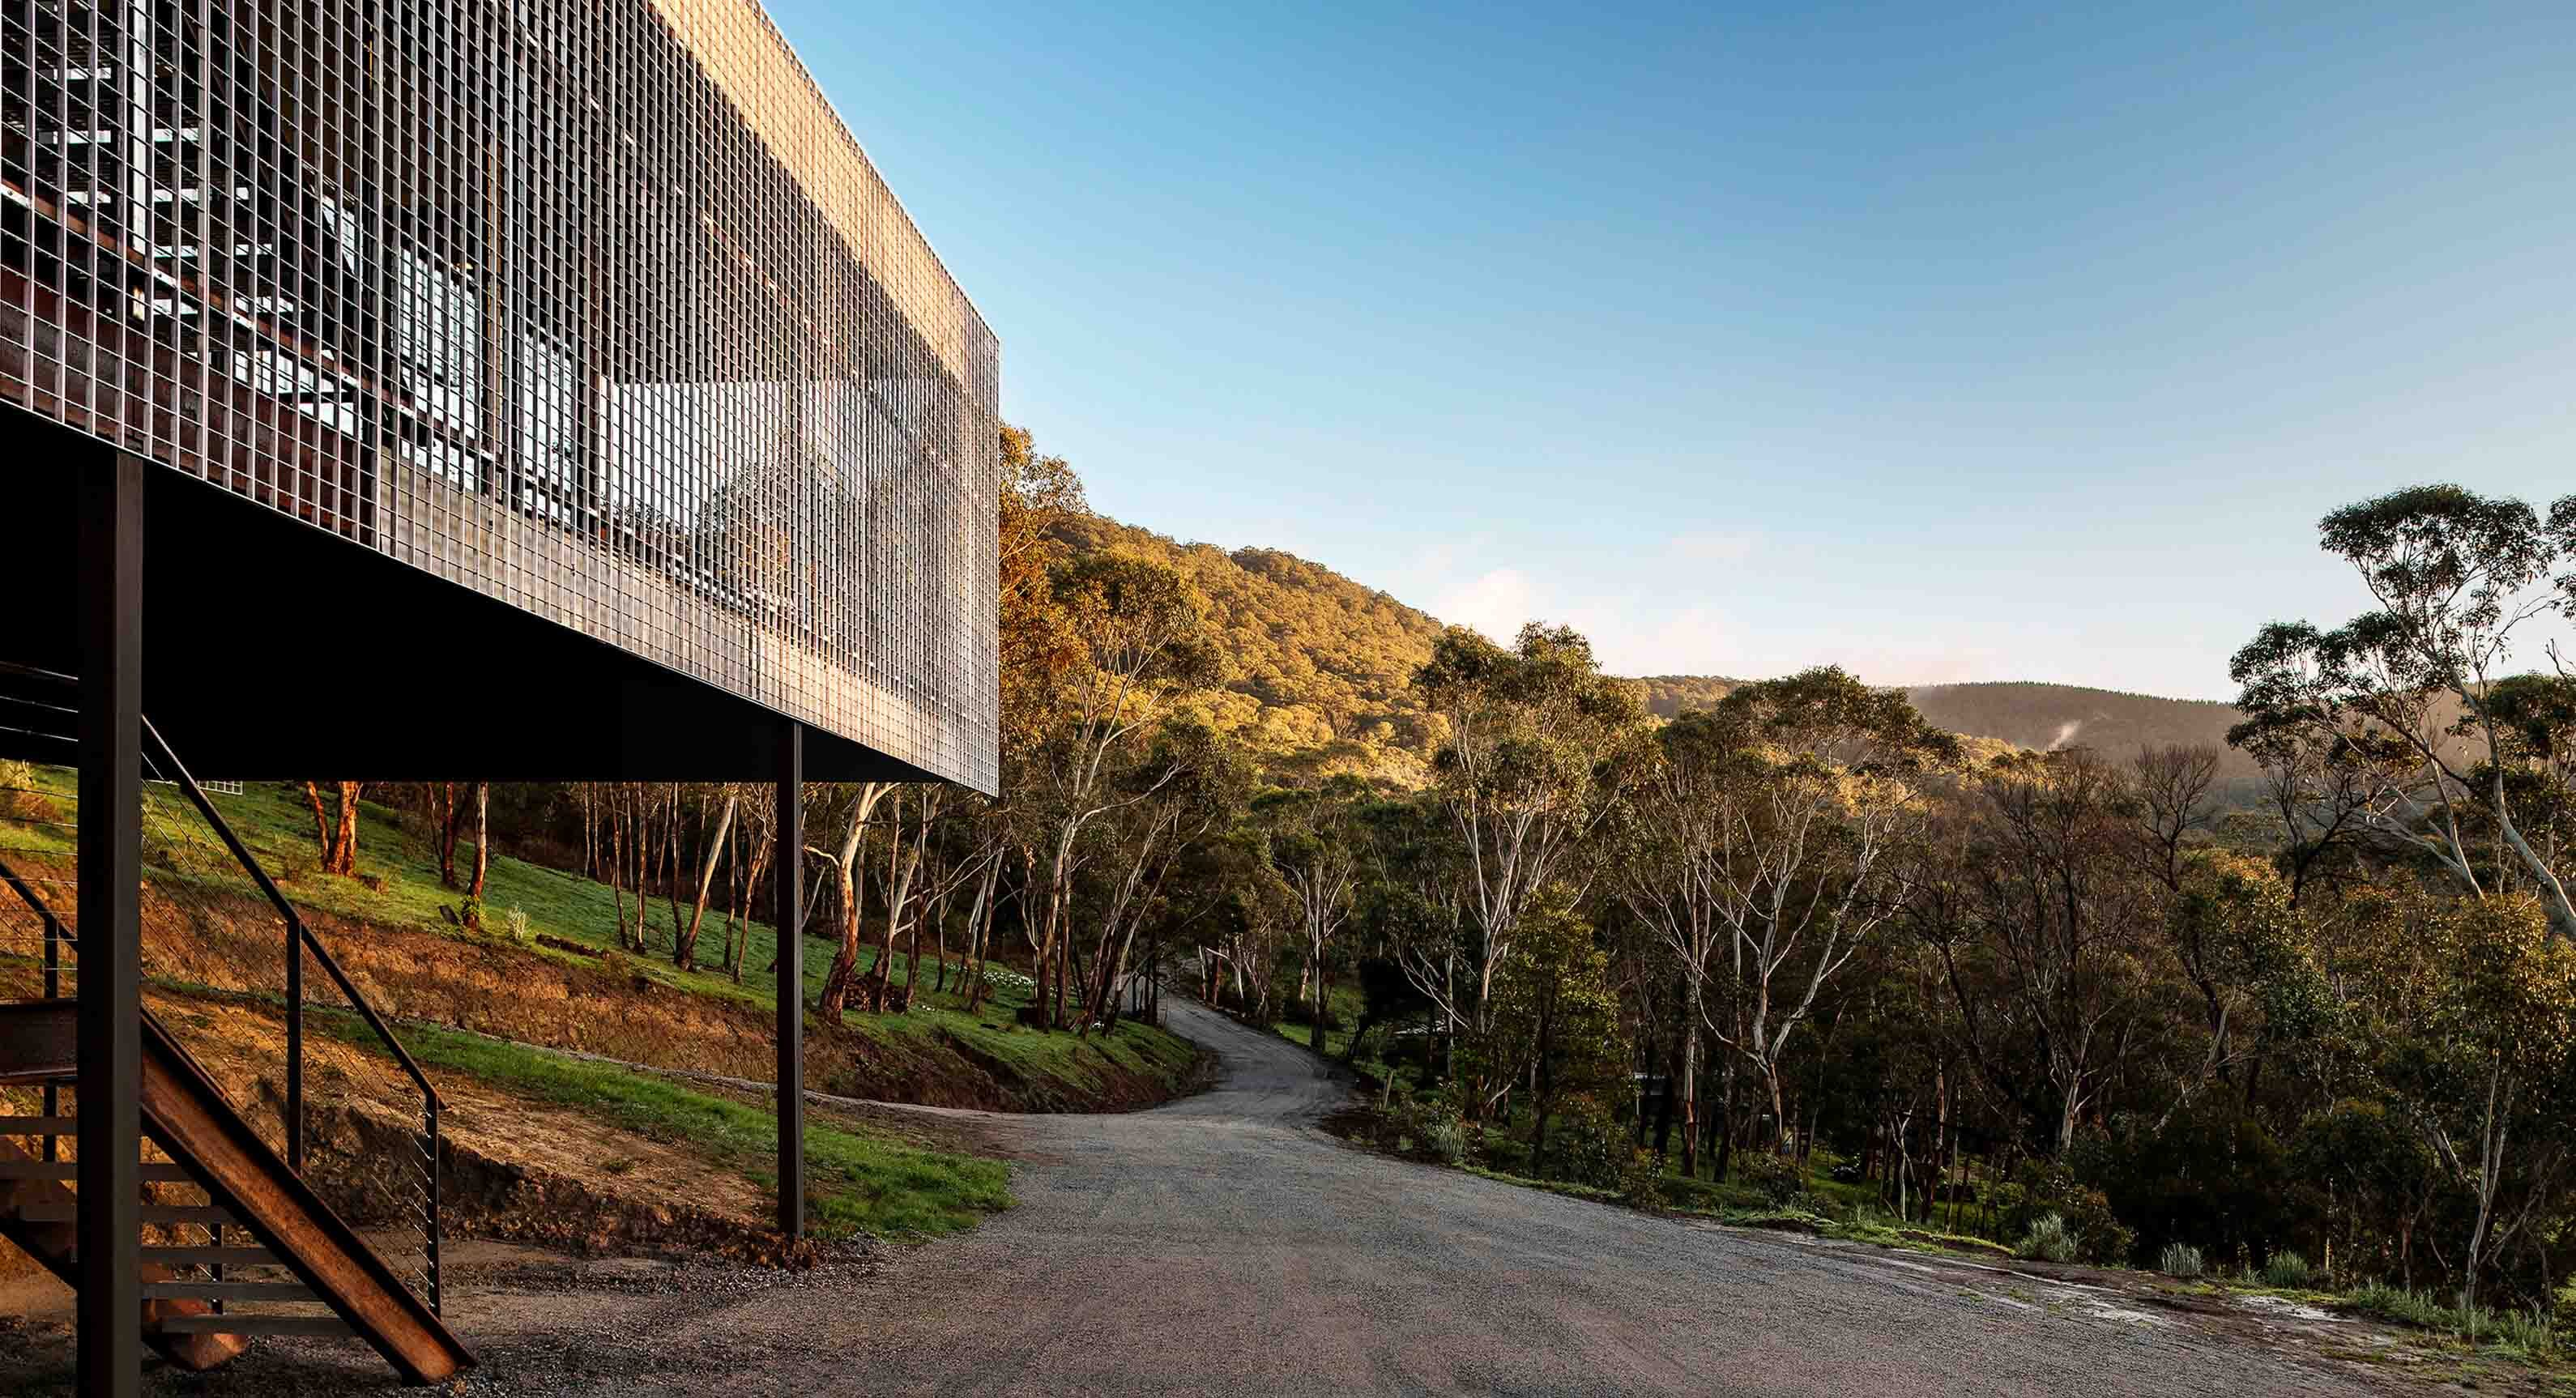 Take A Retreat Into The Wilderness With The Mount Macedon House